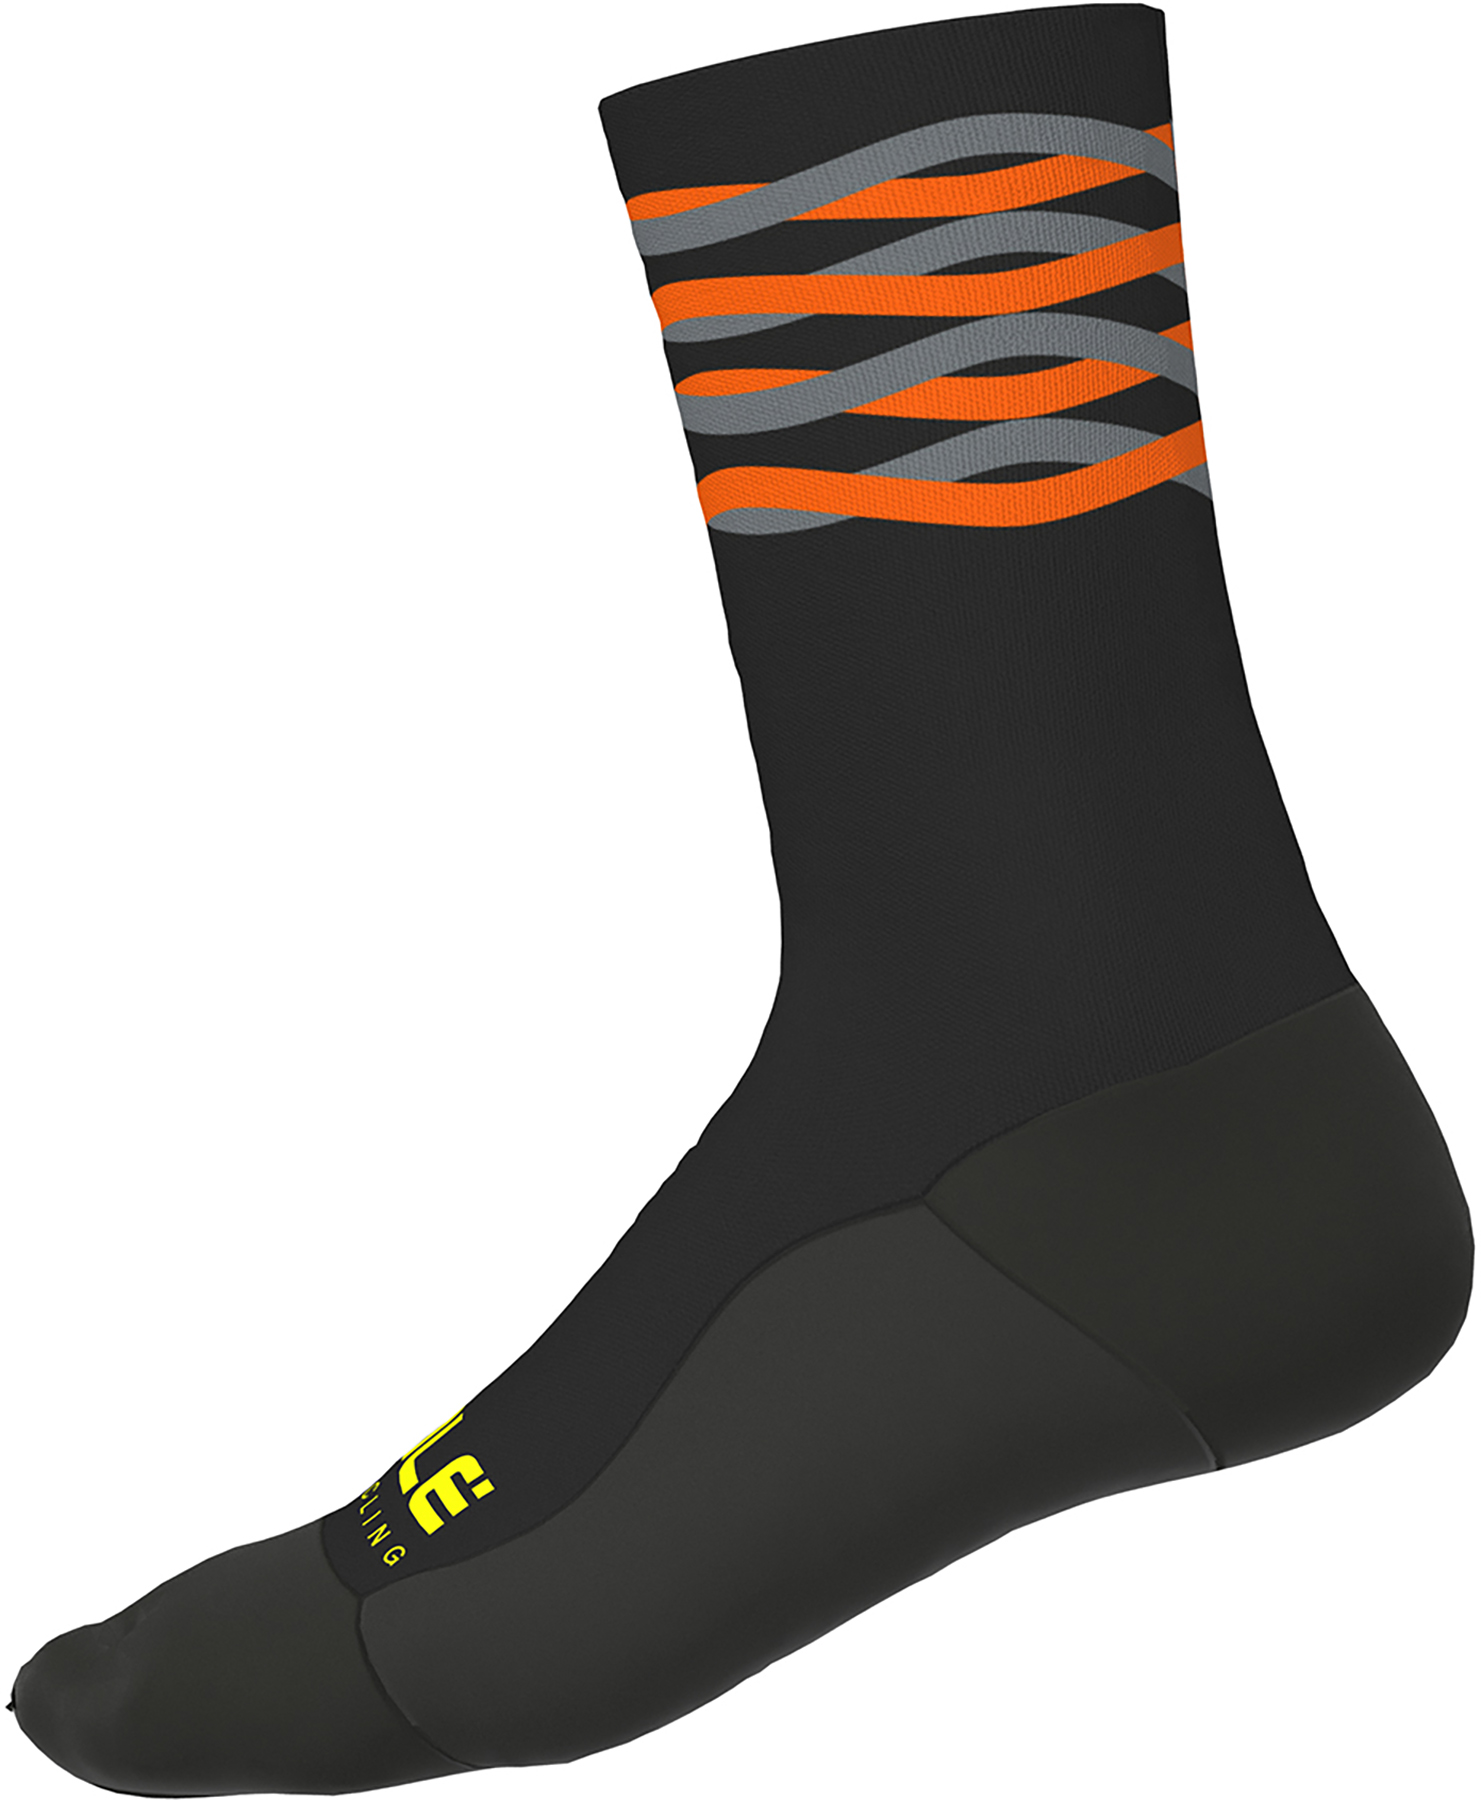 Alé Speed Fondo Socks H18 | Socks